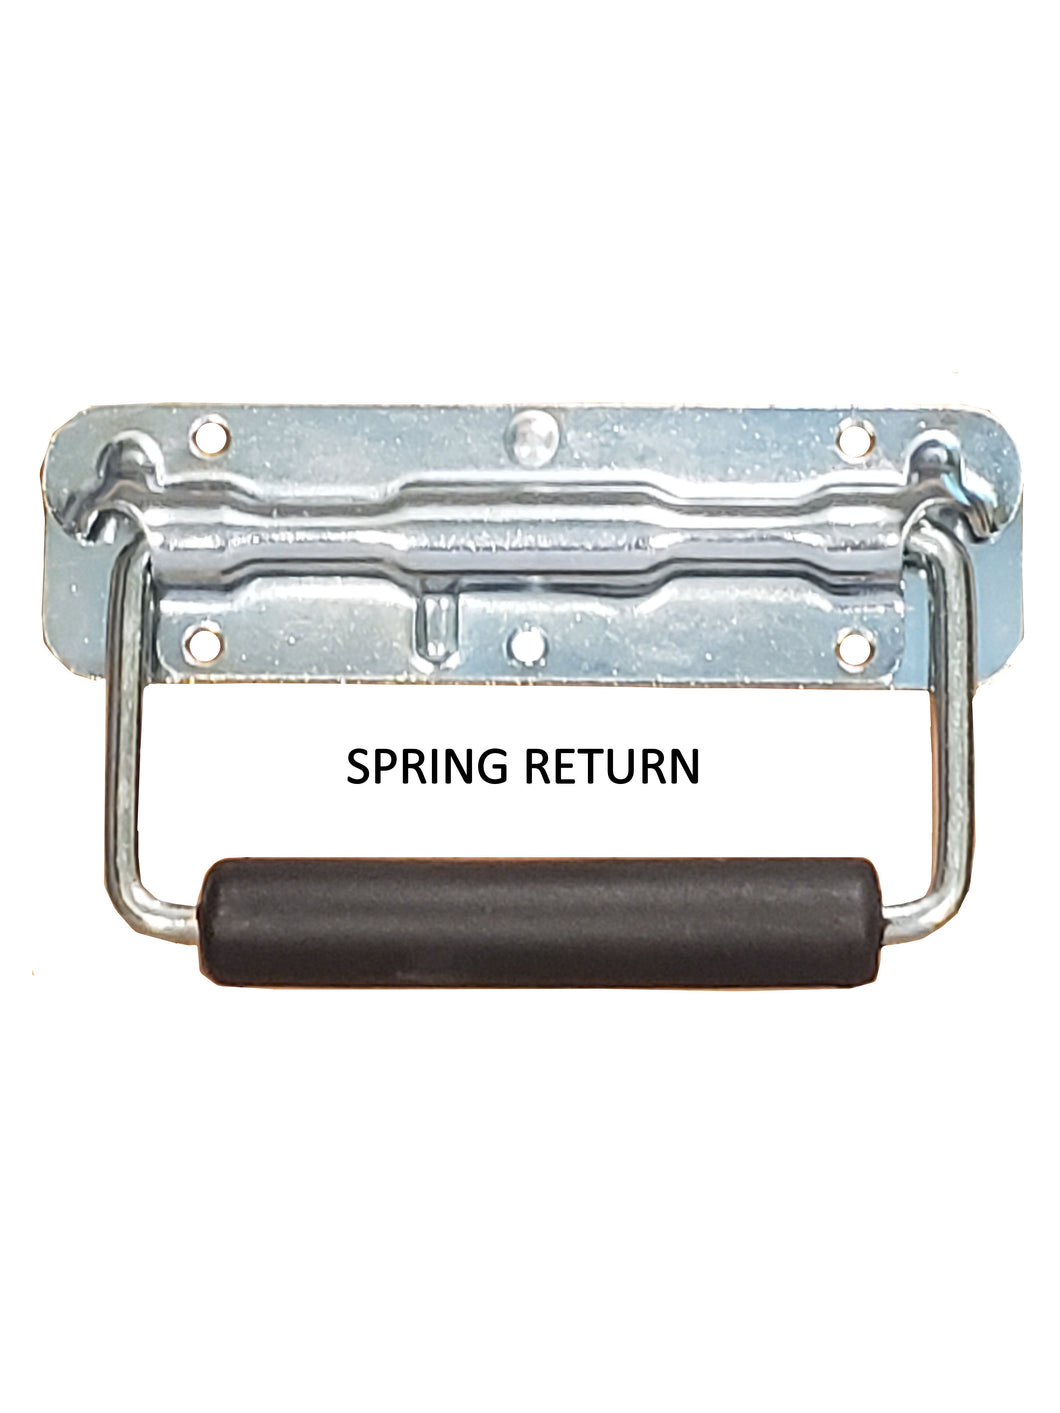 Spring Loaded Surface Mount Handle with Rubber Grip, Zinc